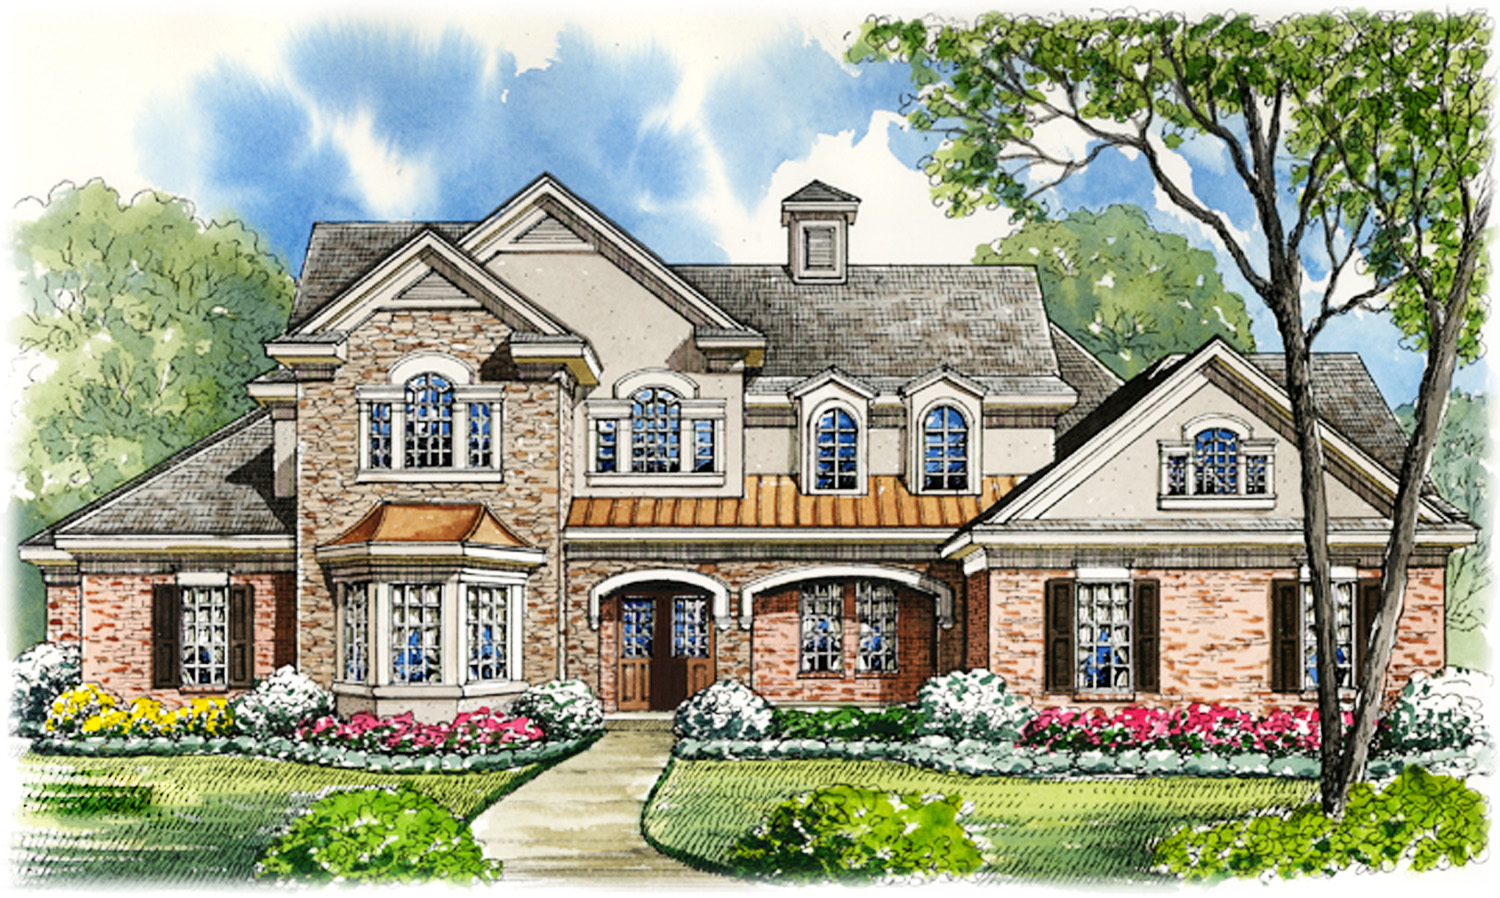 Casita with gazebo ceiling 67071gl architectural for House plans with casita